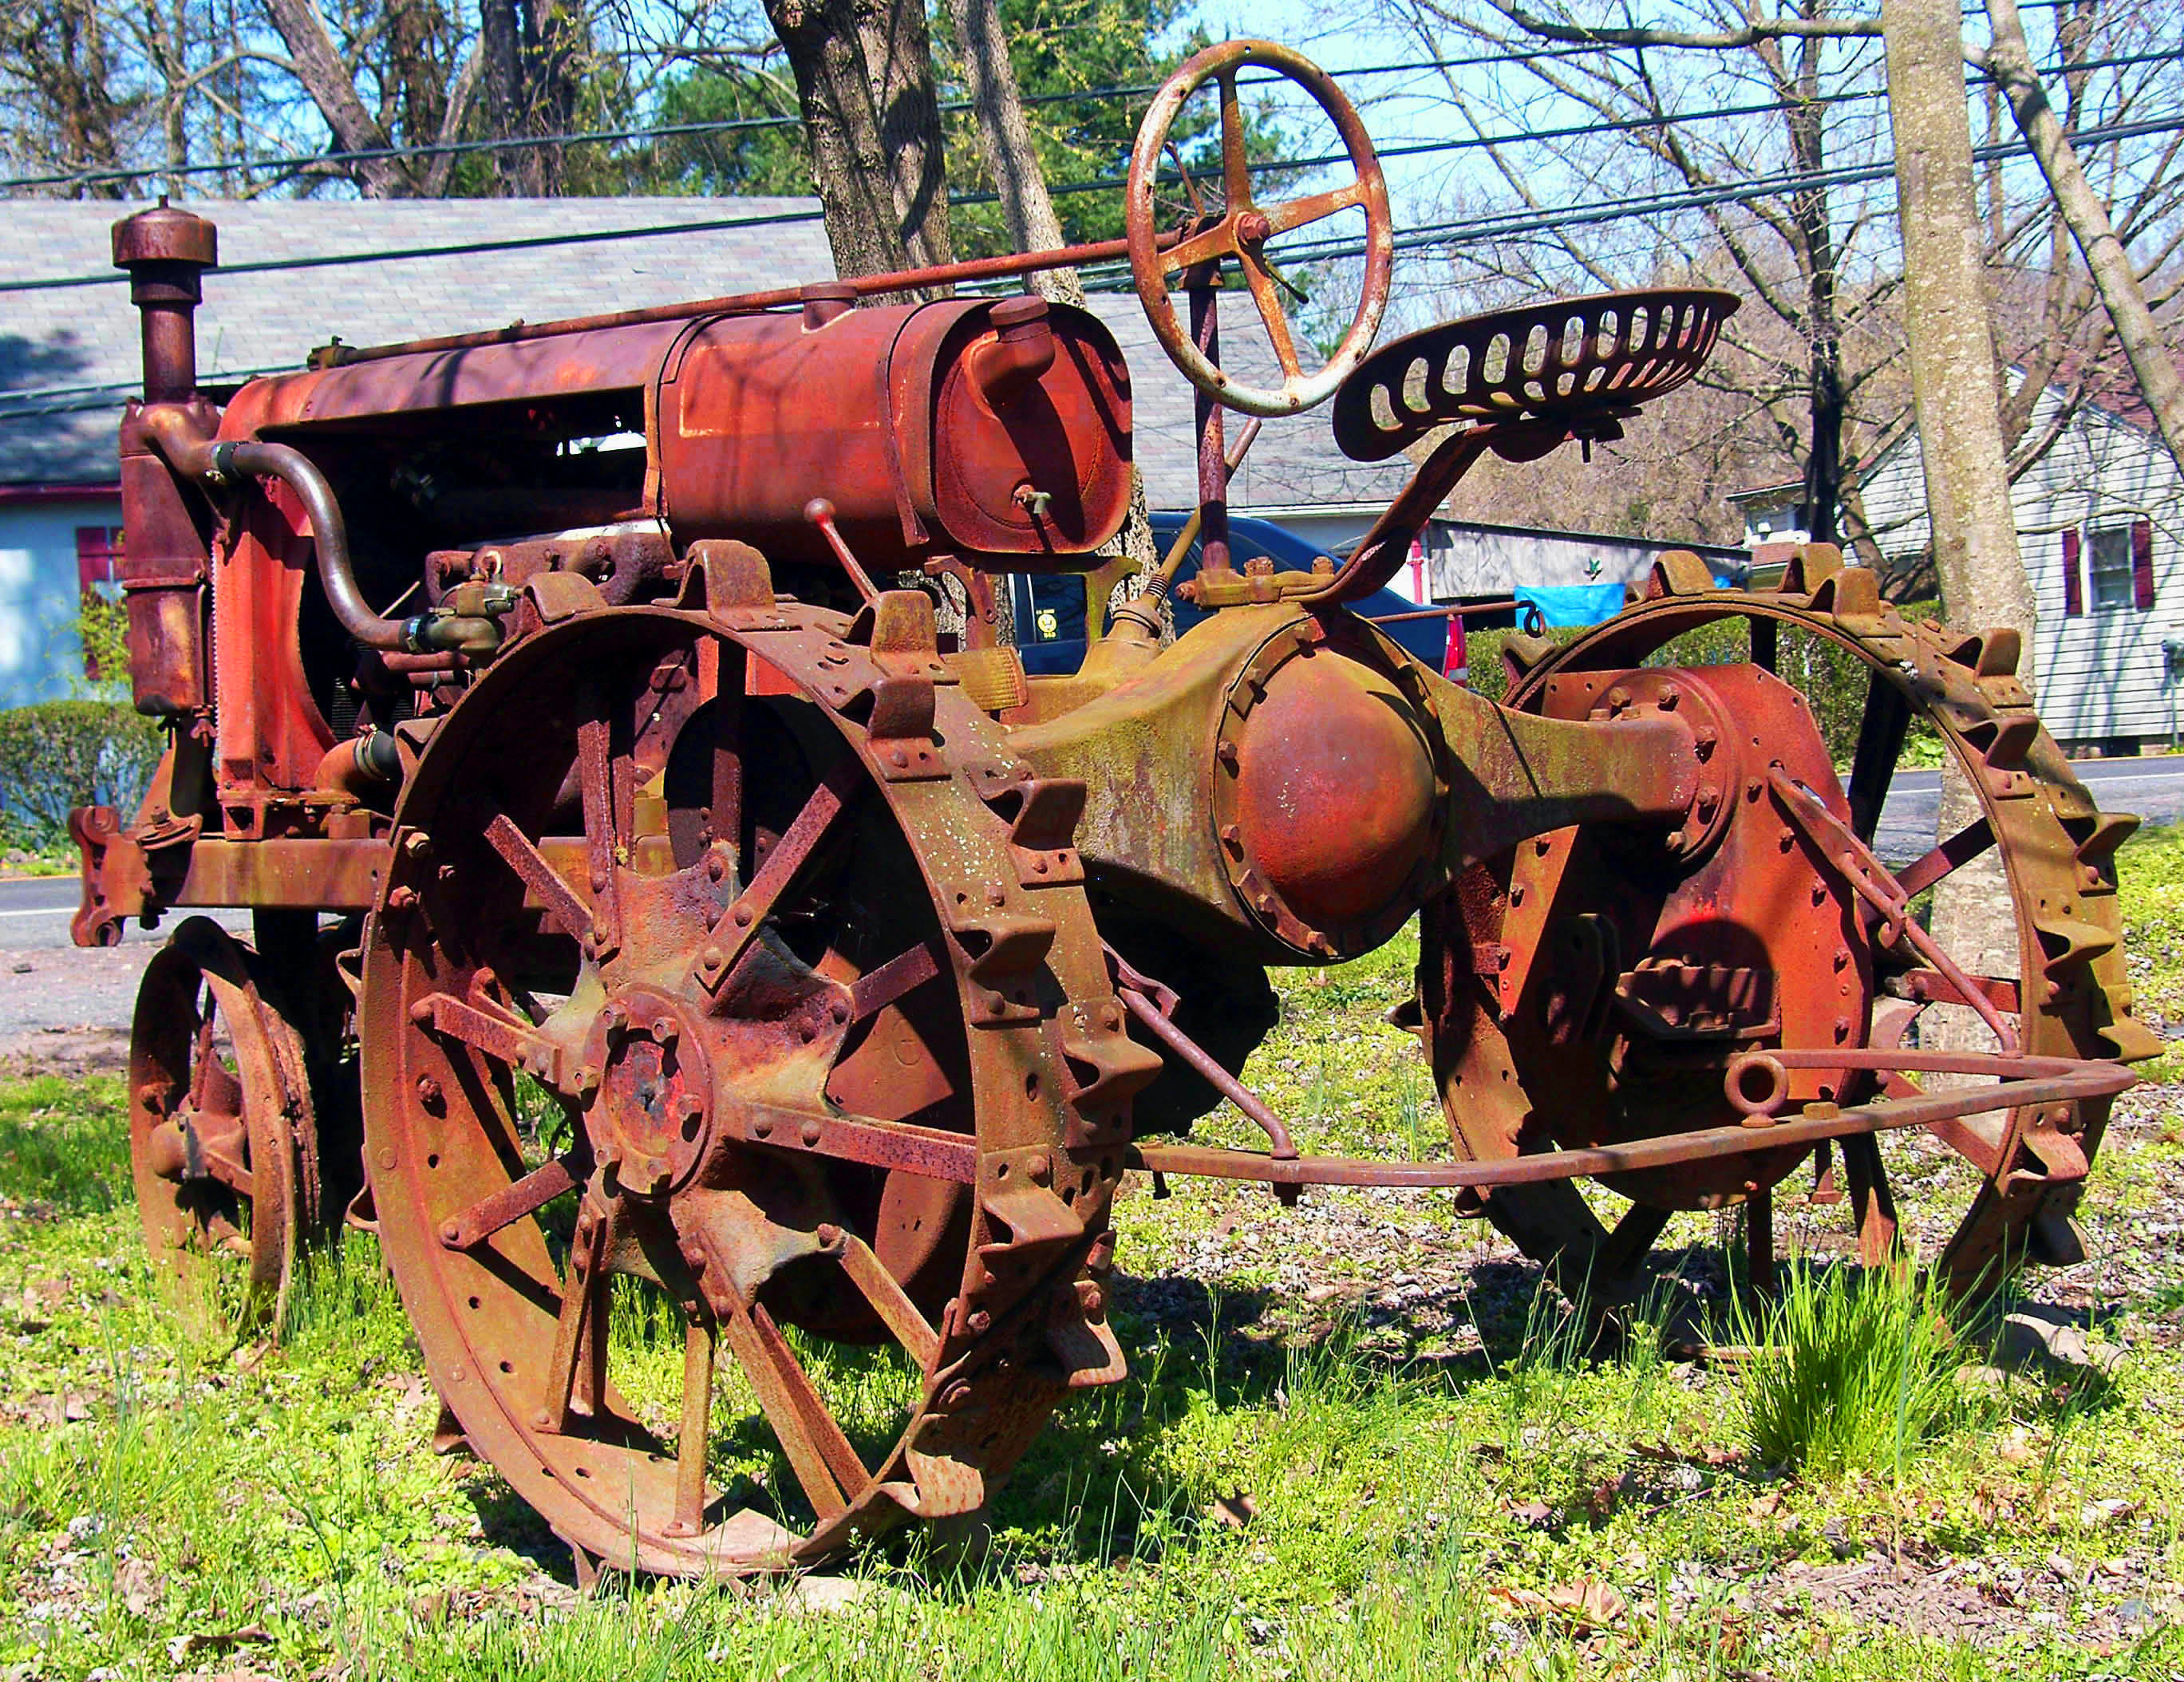 Antique Tractor Steel Wheels : Rusted red antique tractor with metal wheels love s